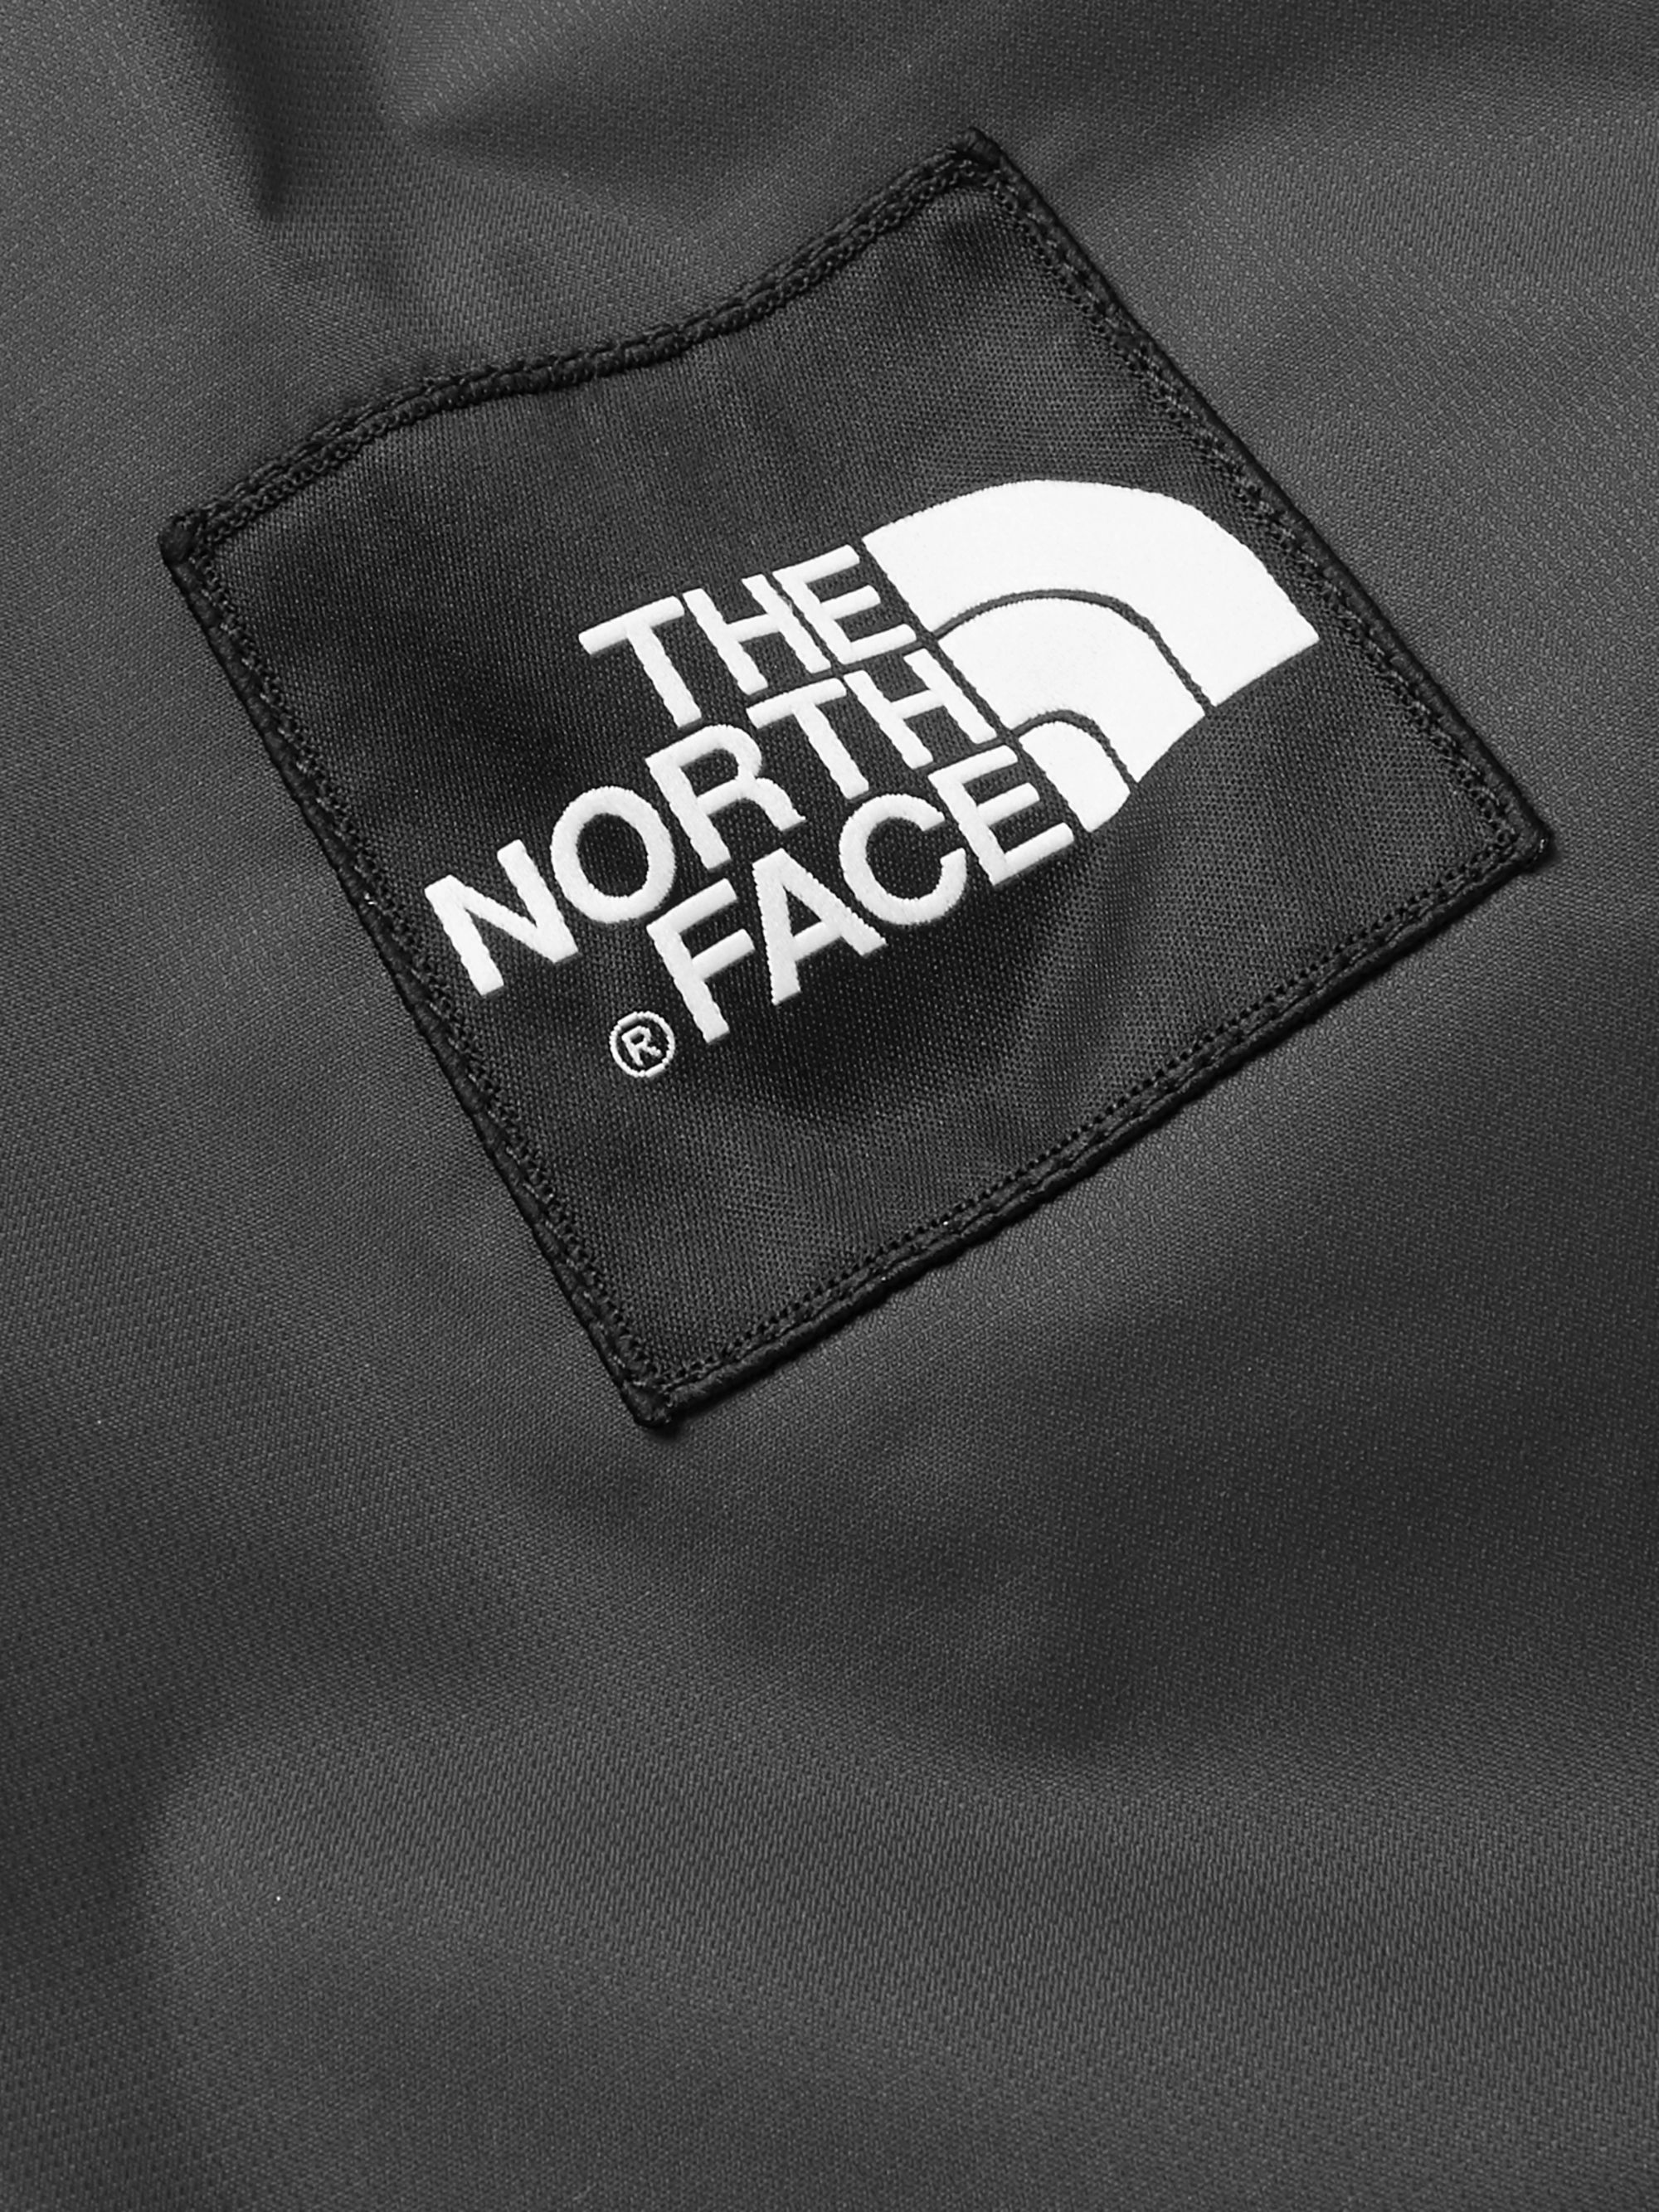 The North Face Mountain Q Waterproof Shell Hooded Jacket